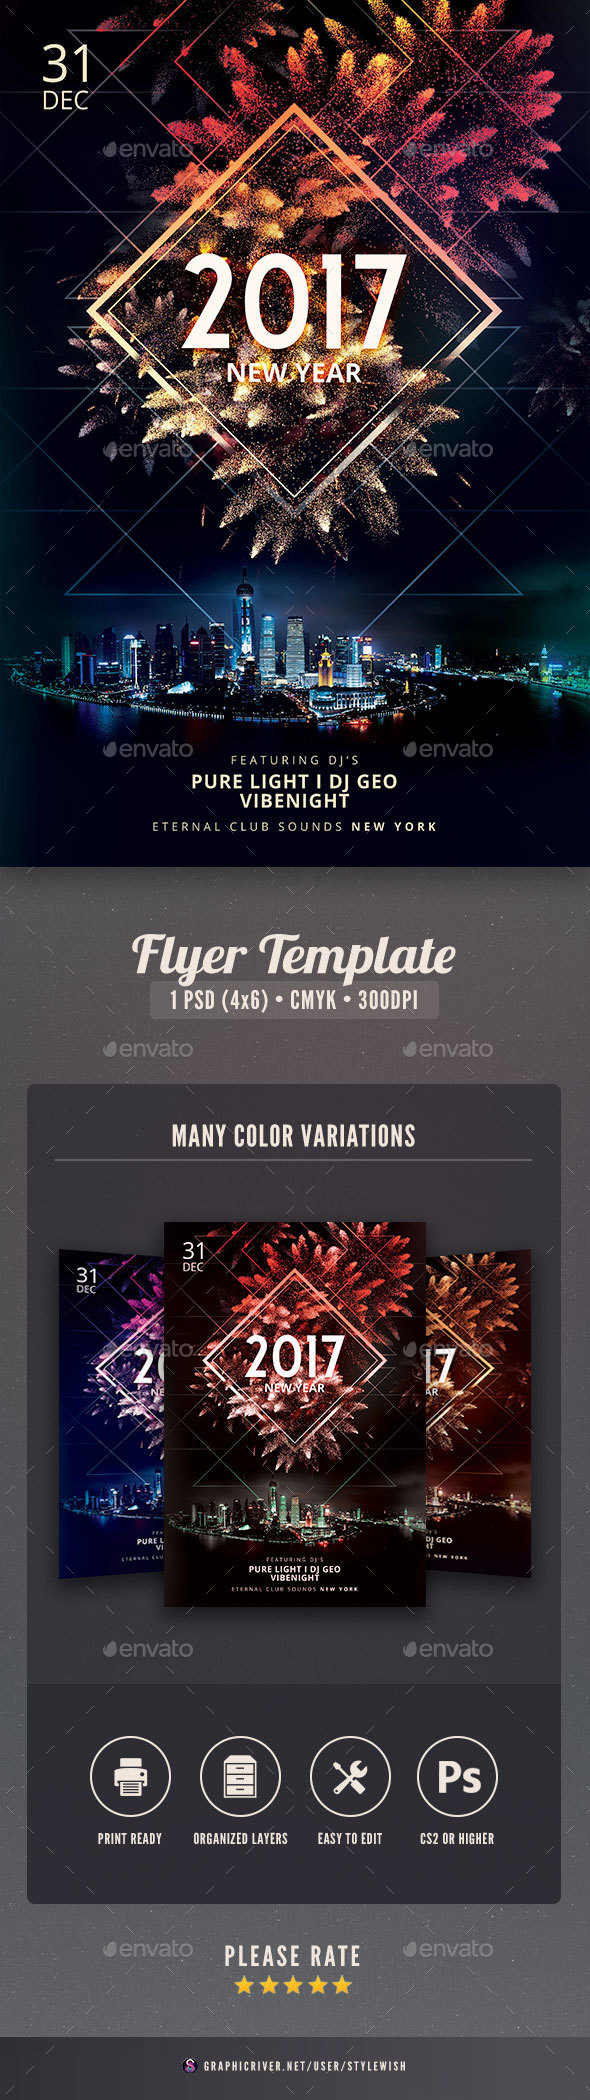 New Year Flyer  Psd Templates Template And Flyer Template